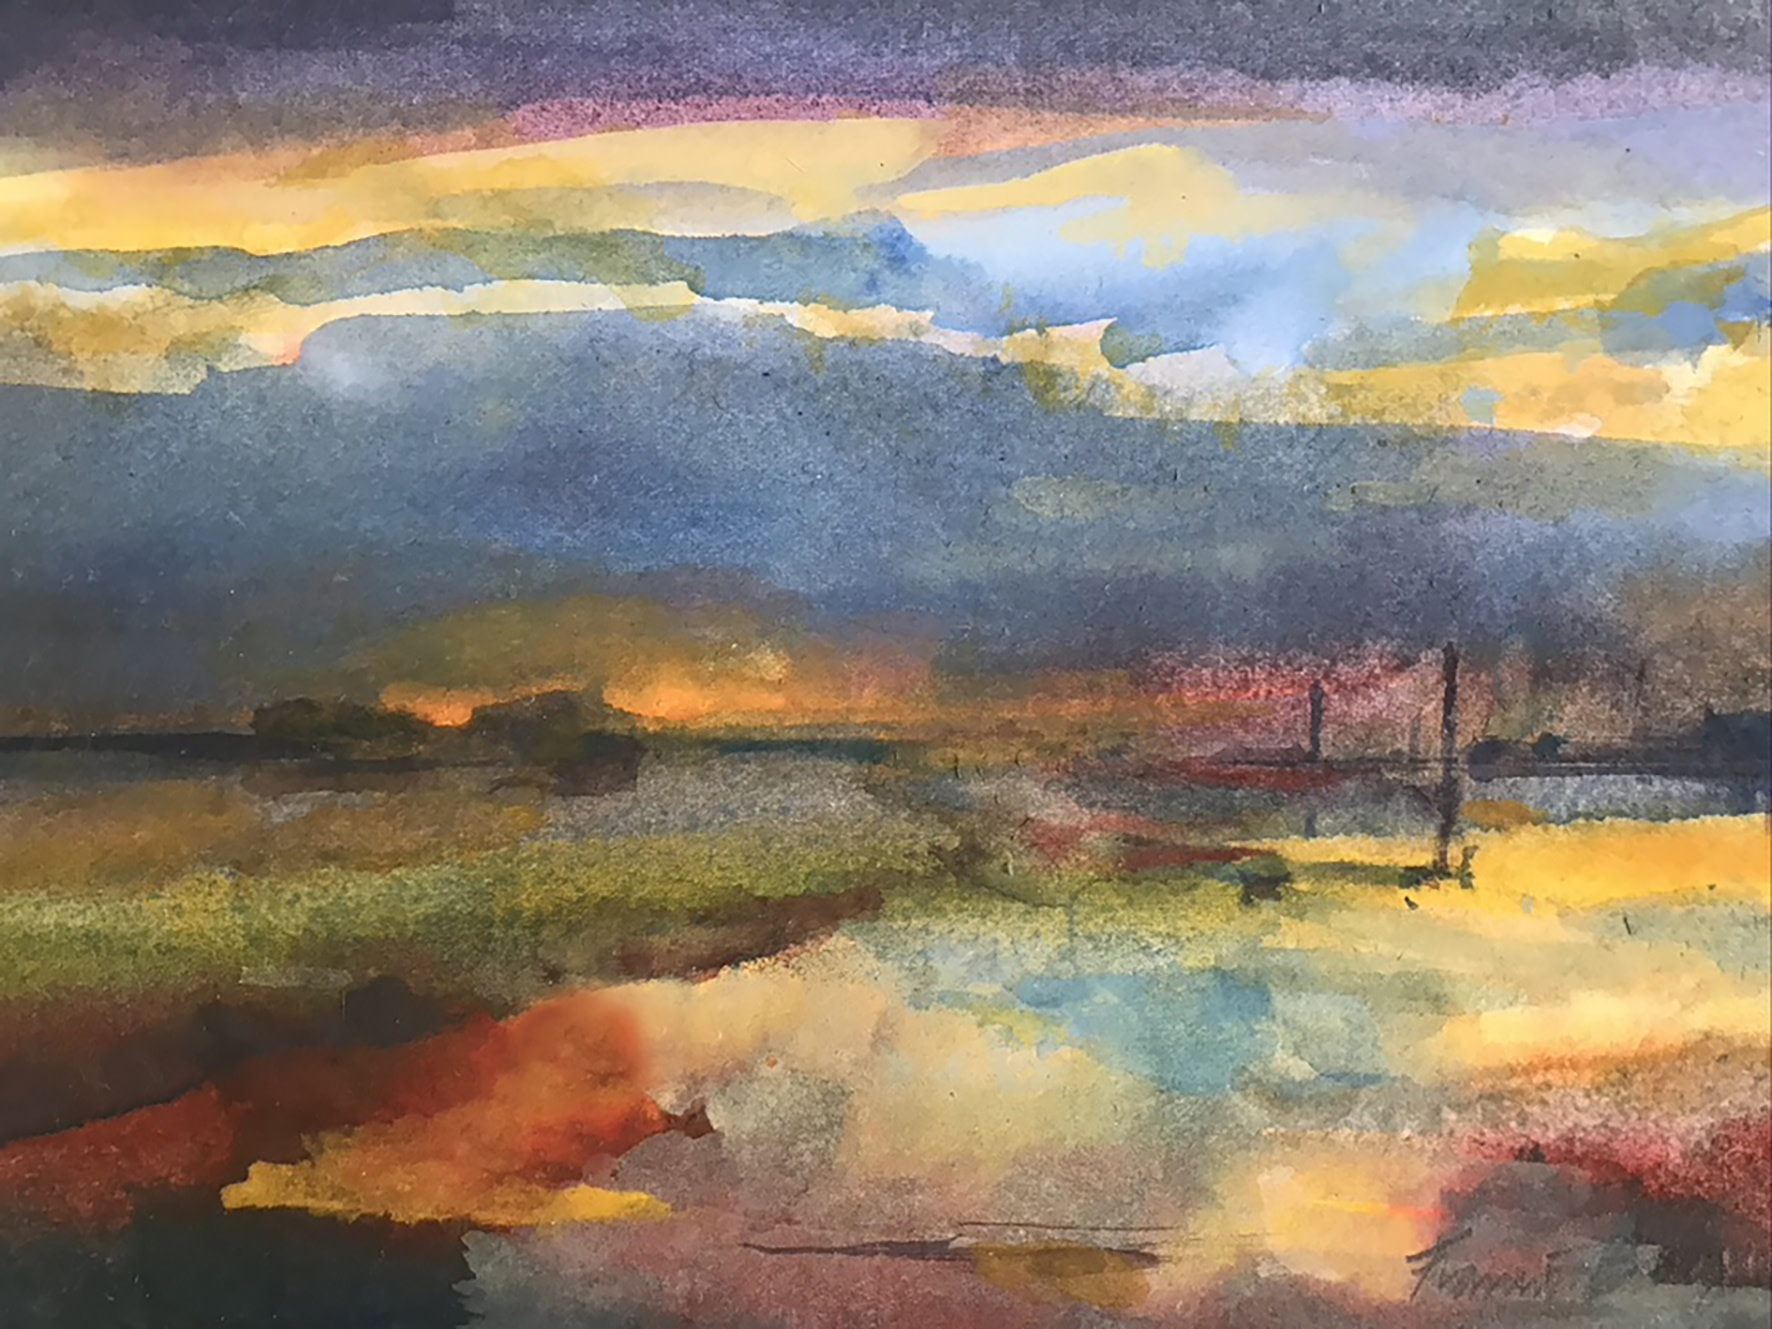 """<span class=""""link fancybox-details-link""""><a href=""""/artists/46-francis-bowyer/works/12355-francis-bowyer-twilight-on-the-blyth-river/"""">View Detail Page</a></span><div class=""""artist""""><span class=""""artist""""><strong>Francis Bowyer</strong></span></div><div class=""""title""""><em>Twilight on the Blyth River</em></div><div class=""""medium"""">watercolour & bodycolour</div><div class=""""dimensions"""">Frame: 36 x 40 cm<br /> Artwork: 15 x 21 cm</div><div class=""""price"""">£560.00</div>"""